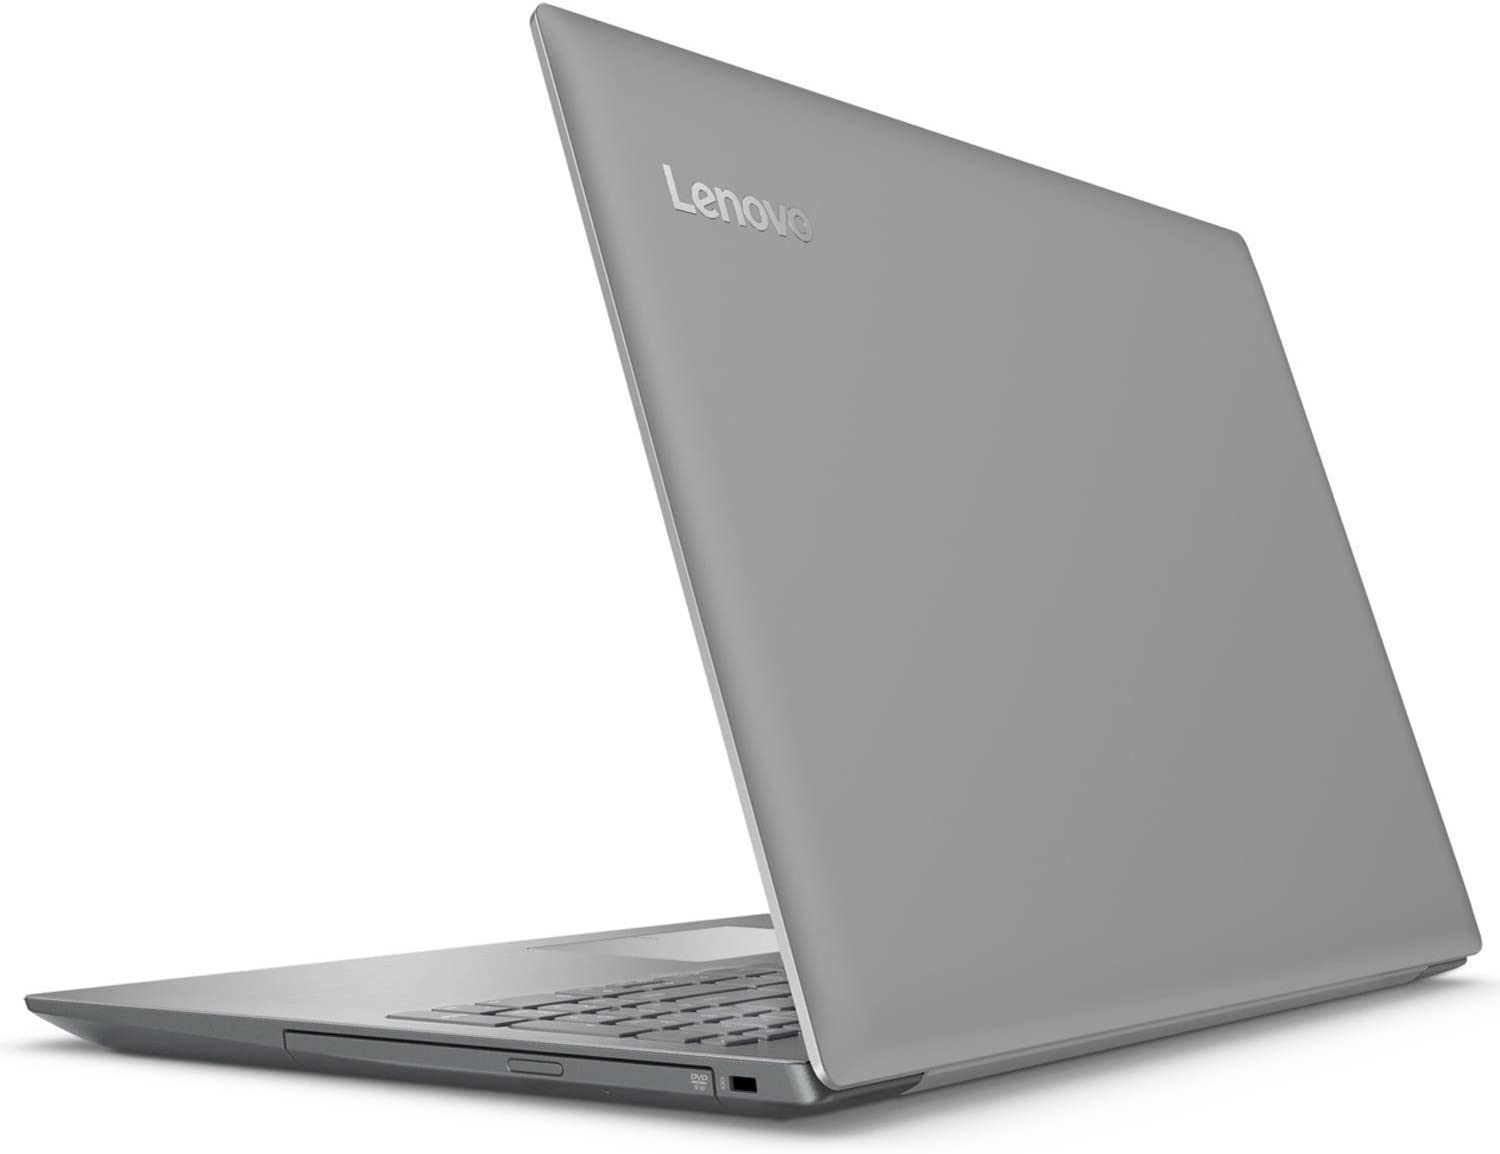 "2018 Flagship Lenovo IdeaPad 320 15.6"" HD Laptop - AMD Dual-Core A9-9420 3.0GHz 8GB DDR4 512GB SSD AMD Radeon R5 DVDRW 802.11ac HDMI Bluetooth Webcam 4 in 1 Card Reader USB 3.0 Win 10 - Platinum Gray"